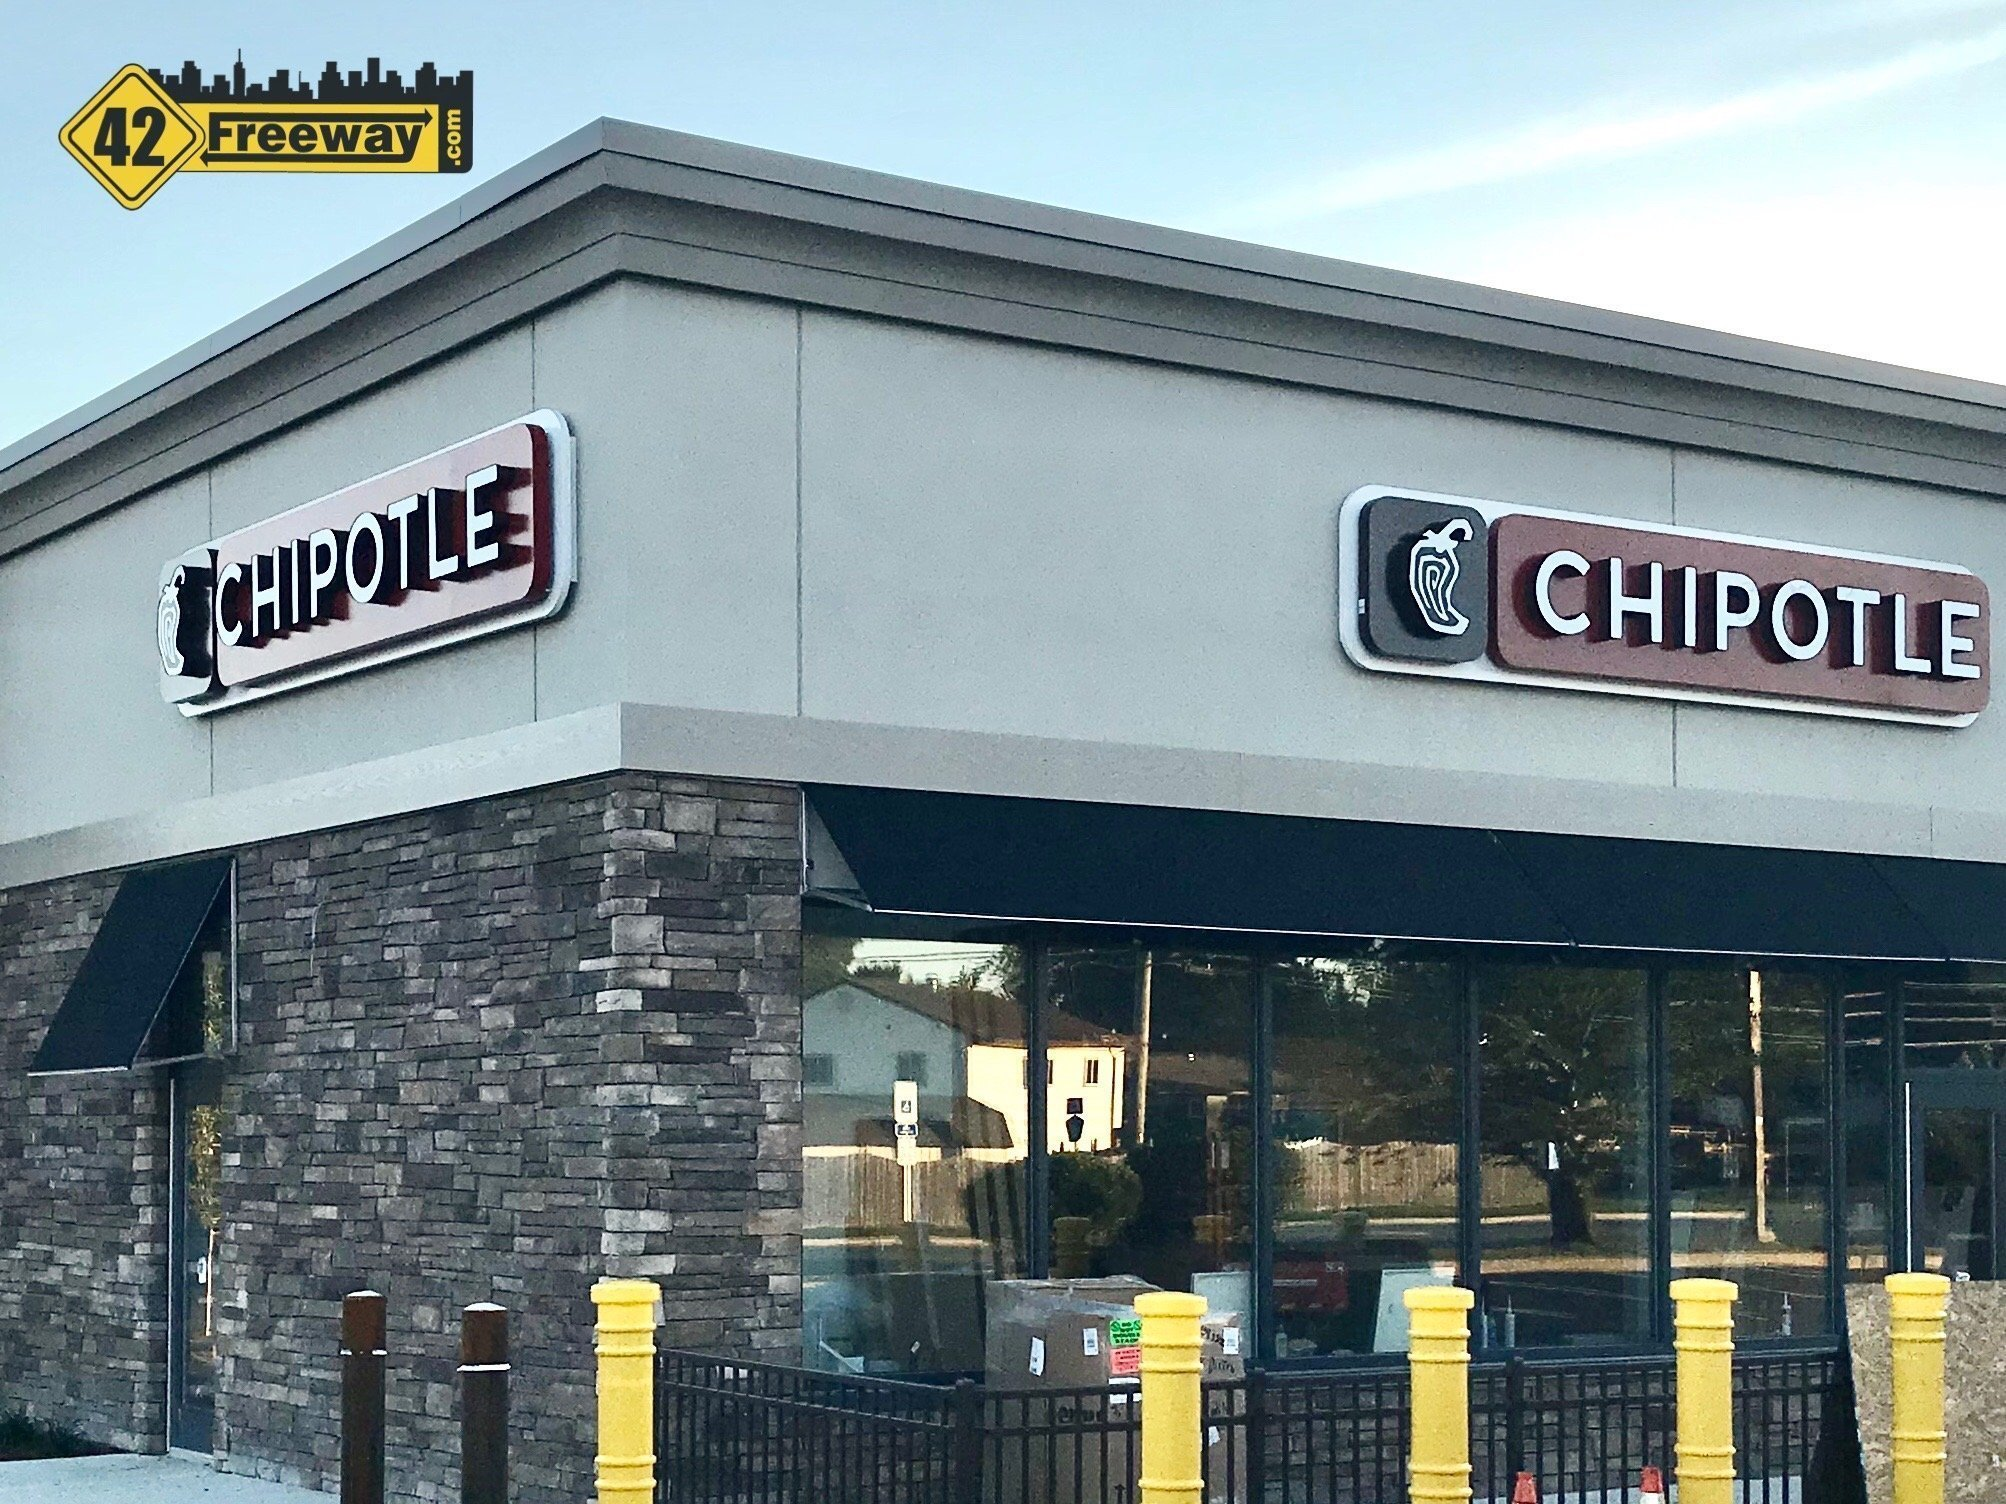 Chipotle Washington Twp is OPEN!  Located on Egg Harbor Road in Front of Acme.  Features Chipotlane pickup!